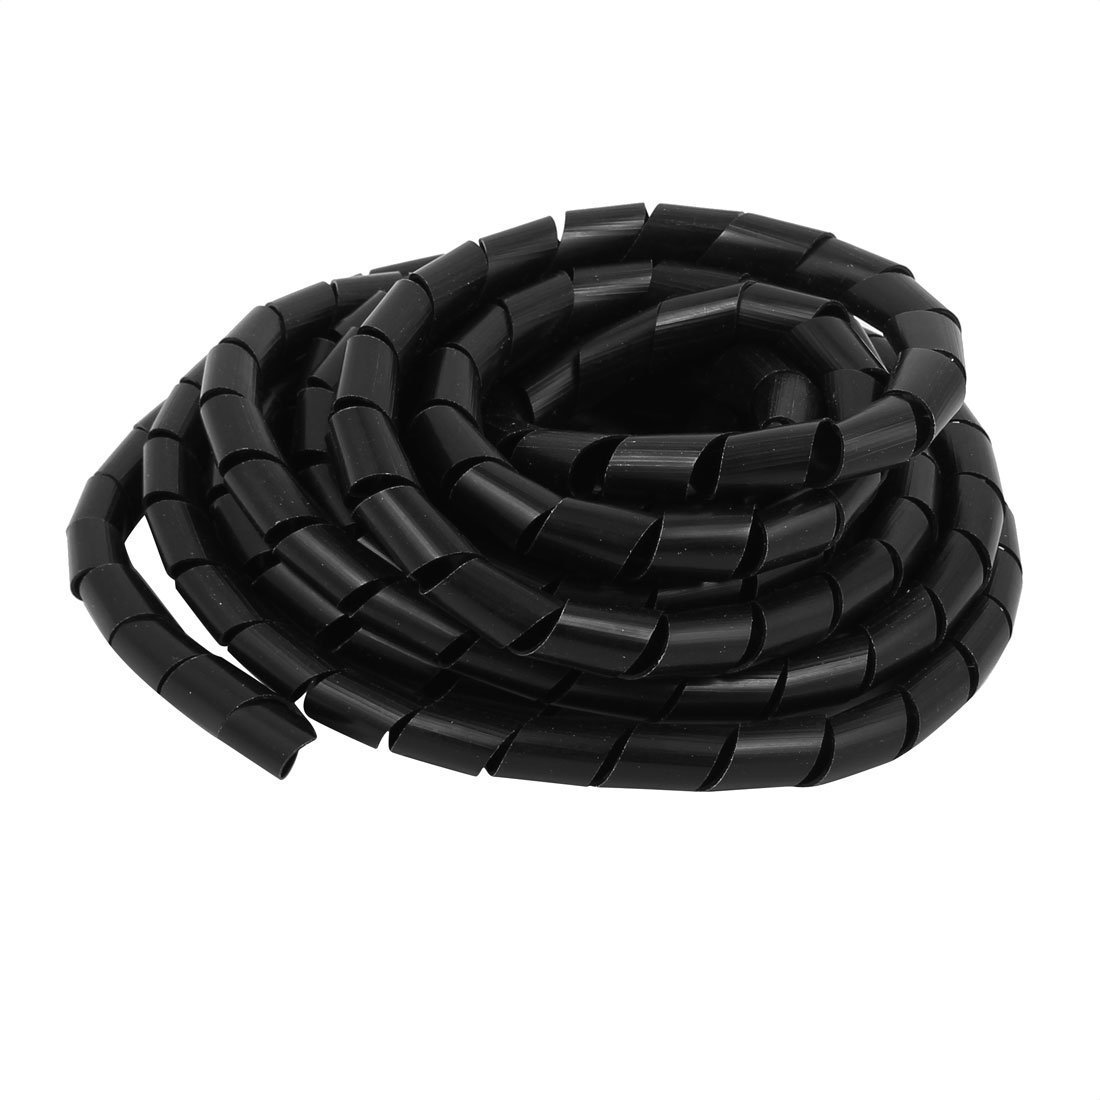 Portal Cool 16mm Dia 5M Length Cable Wire Tidy Wrap Spiral Wrapping Band Organizer Black